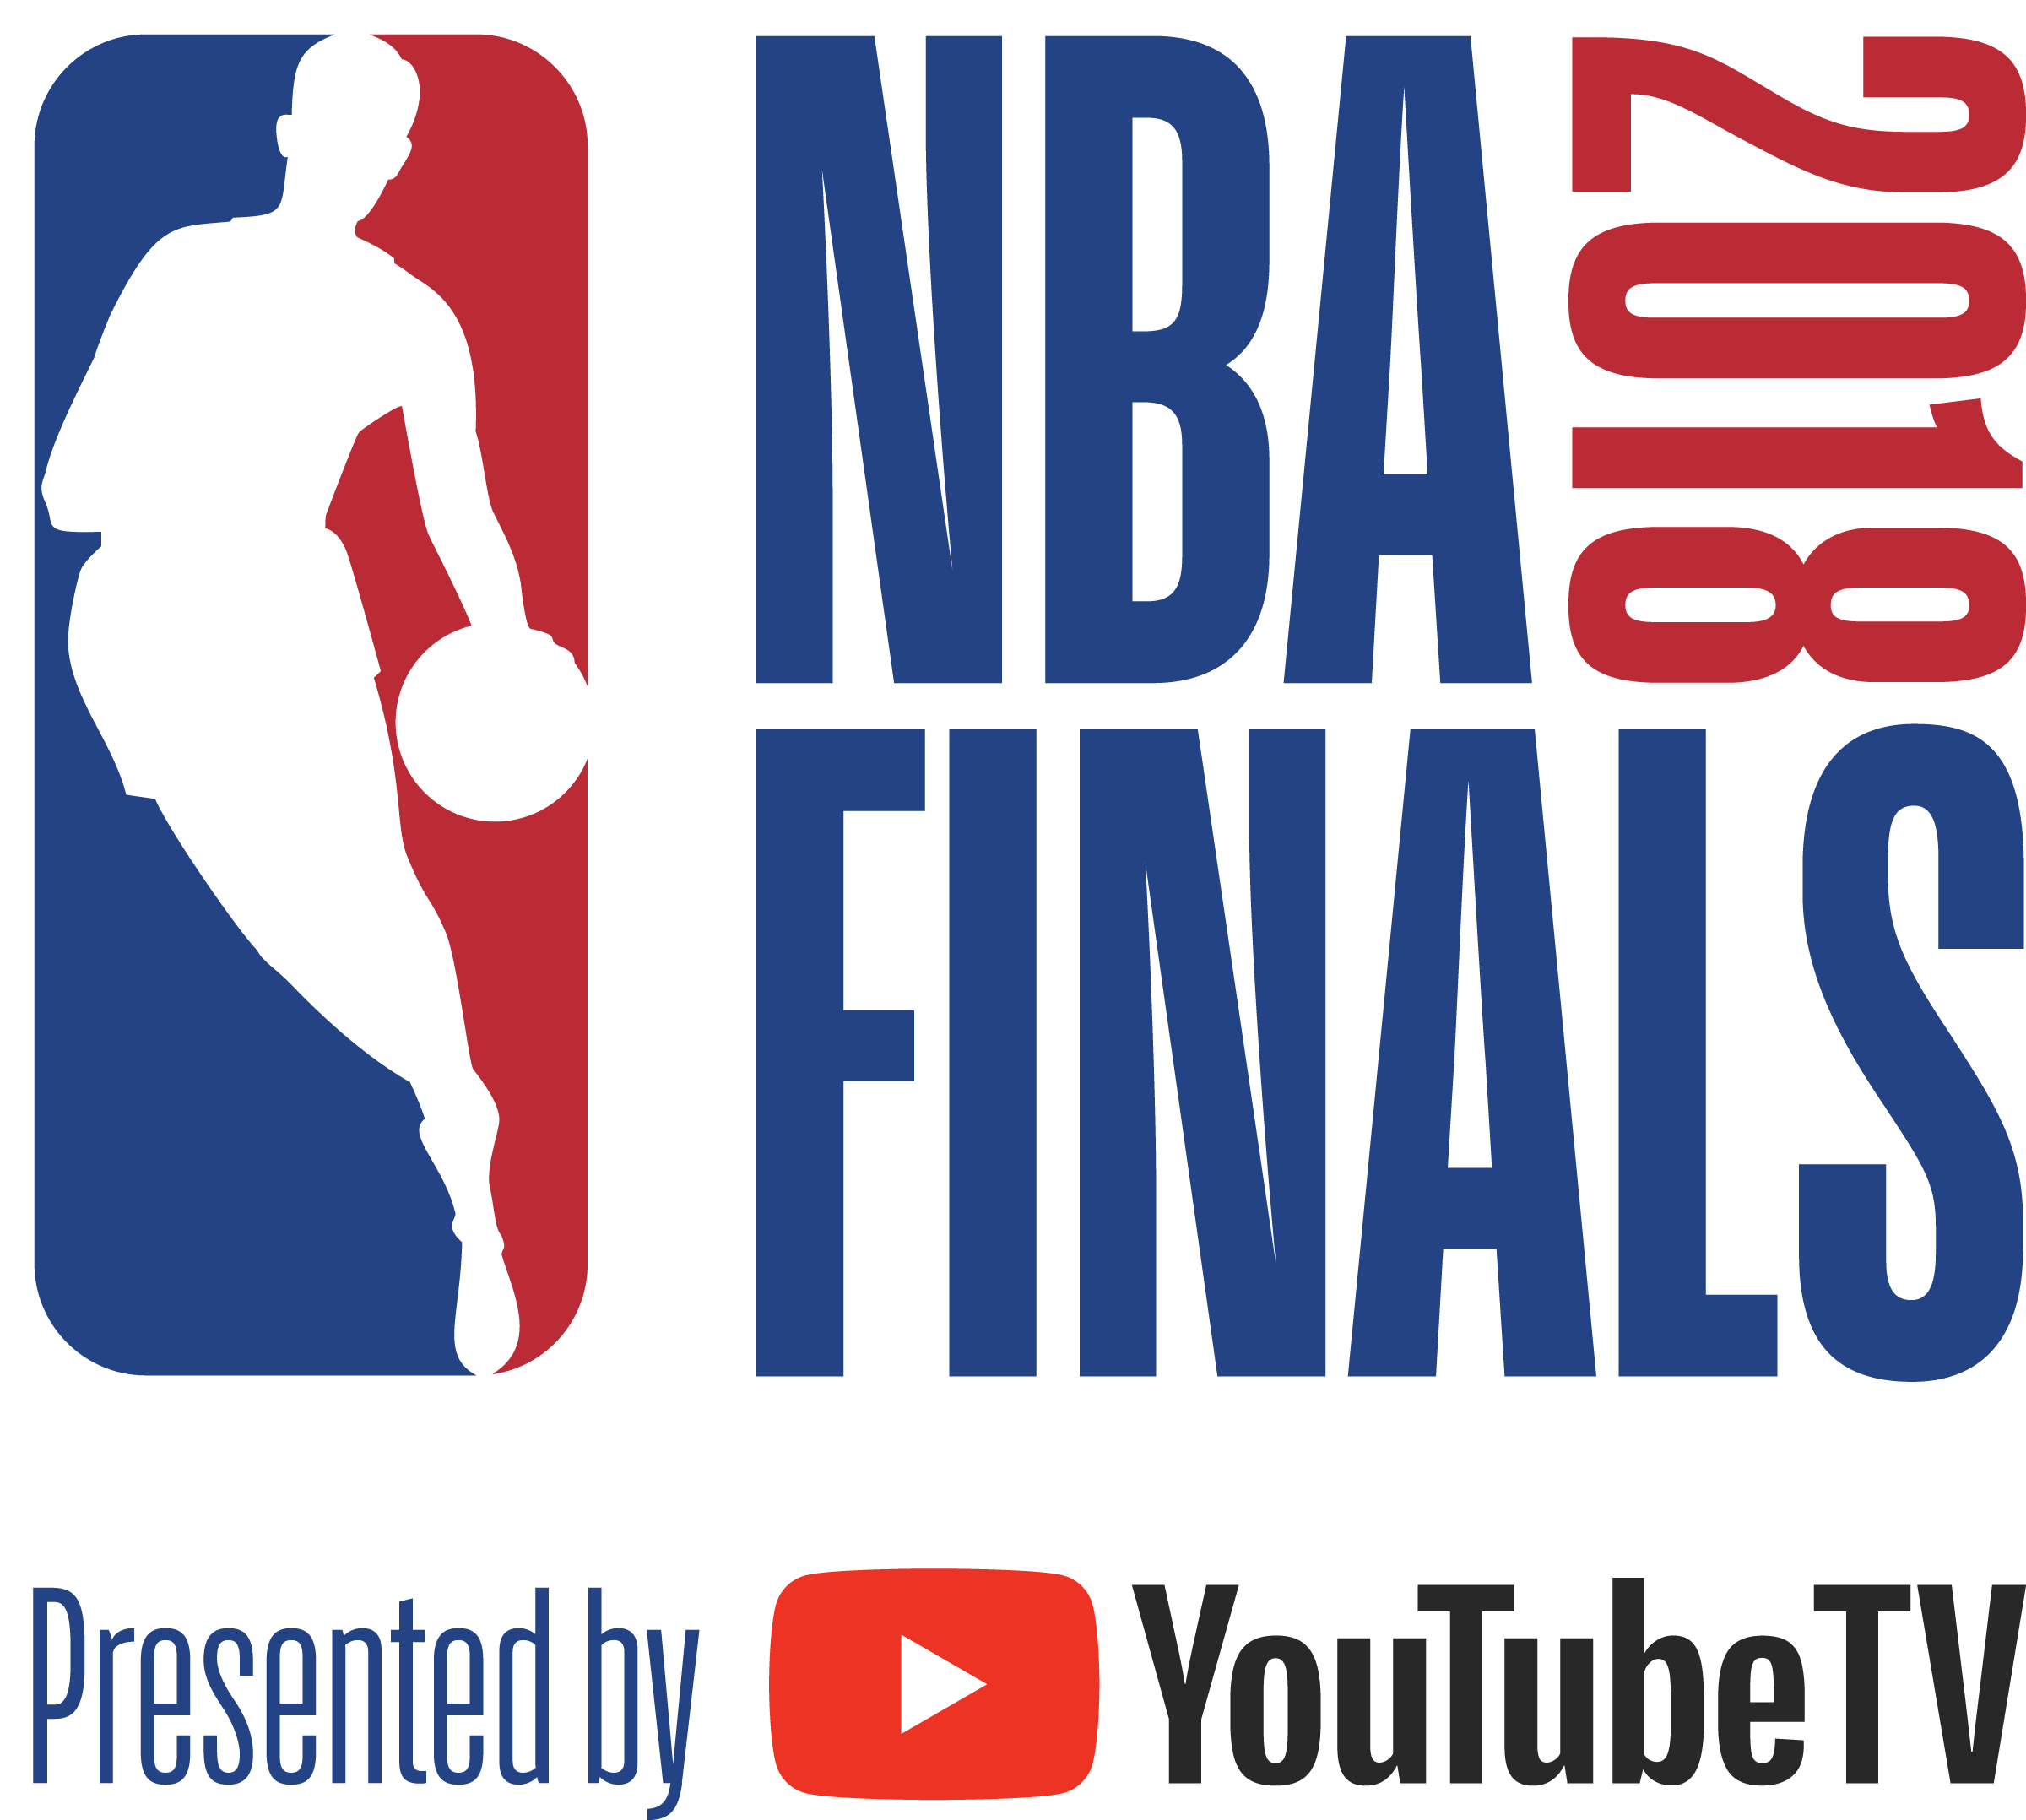 NBA, YouTube TV Partner to Broadcast 2018 Finals